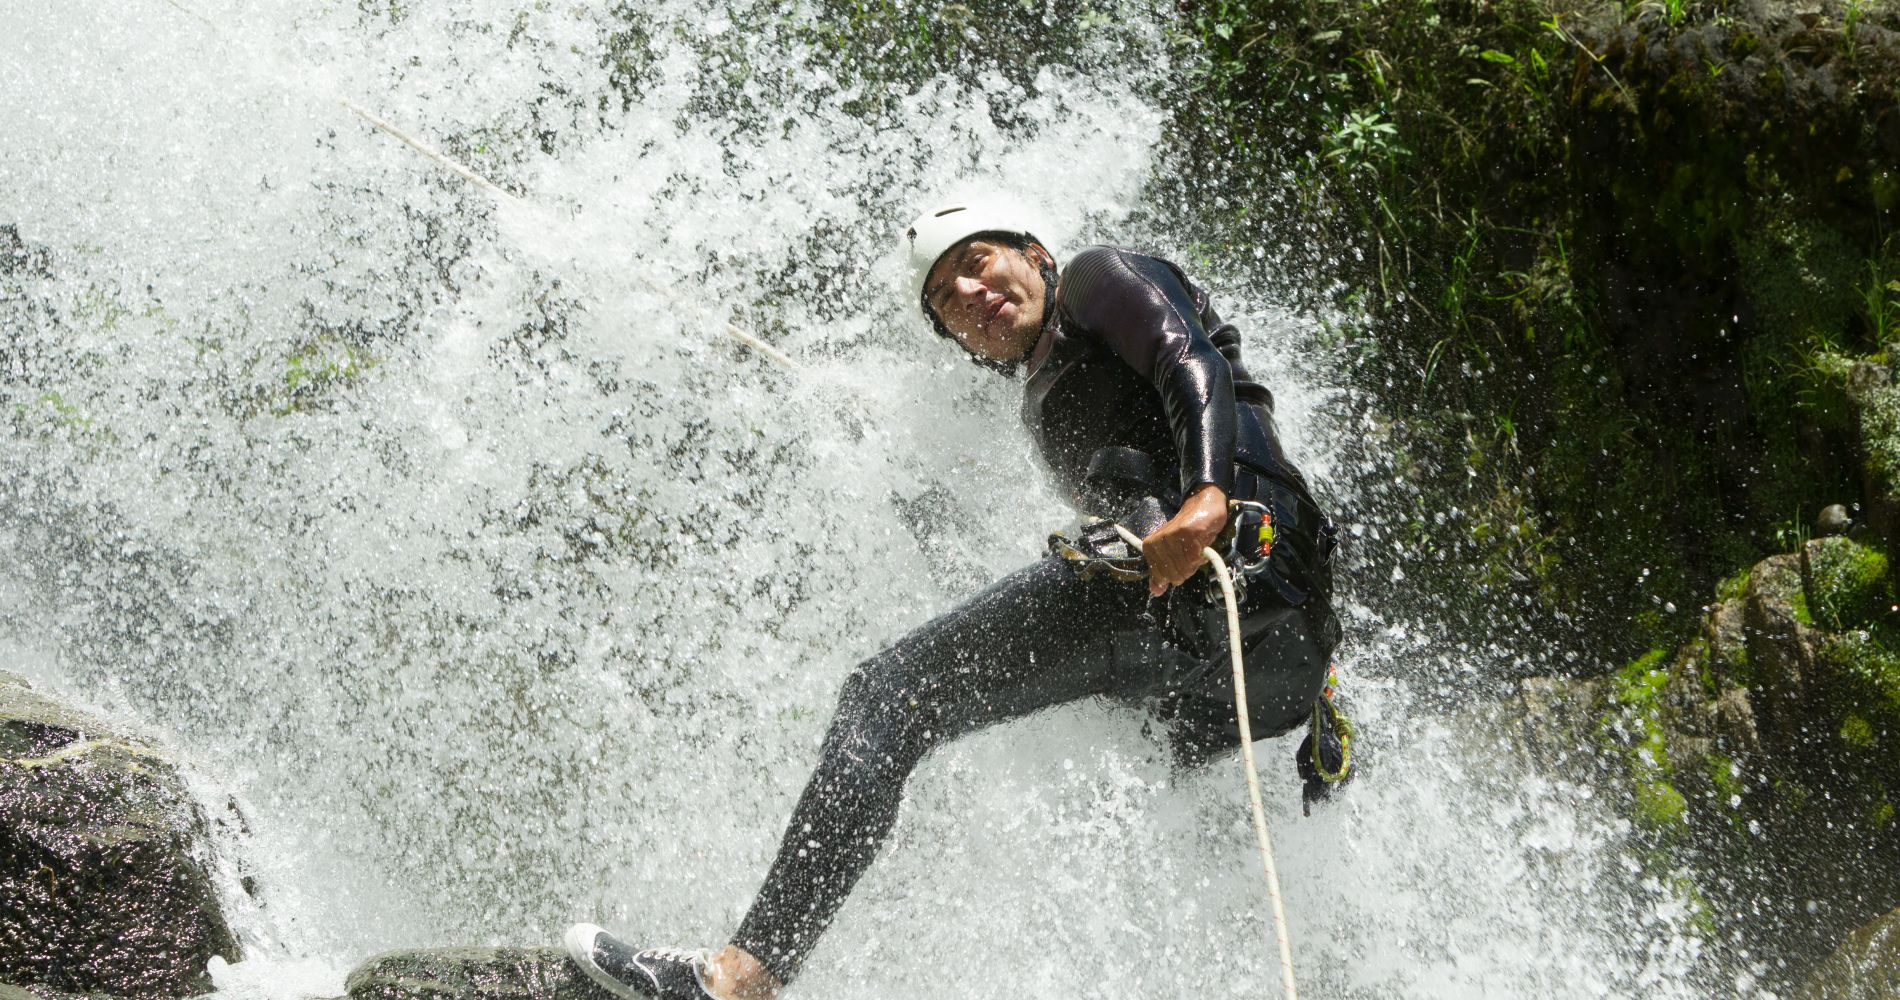 Waterfall Rappelling/Canyoning & Zipline Experience in Costa Rica